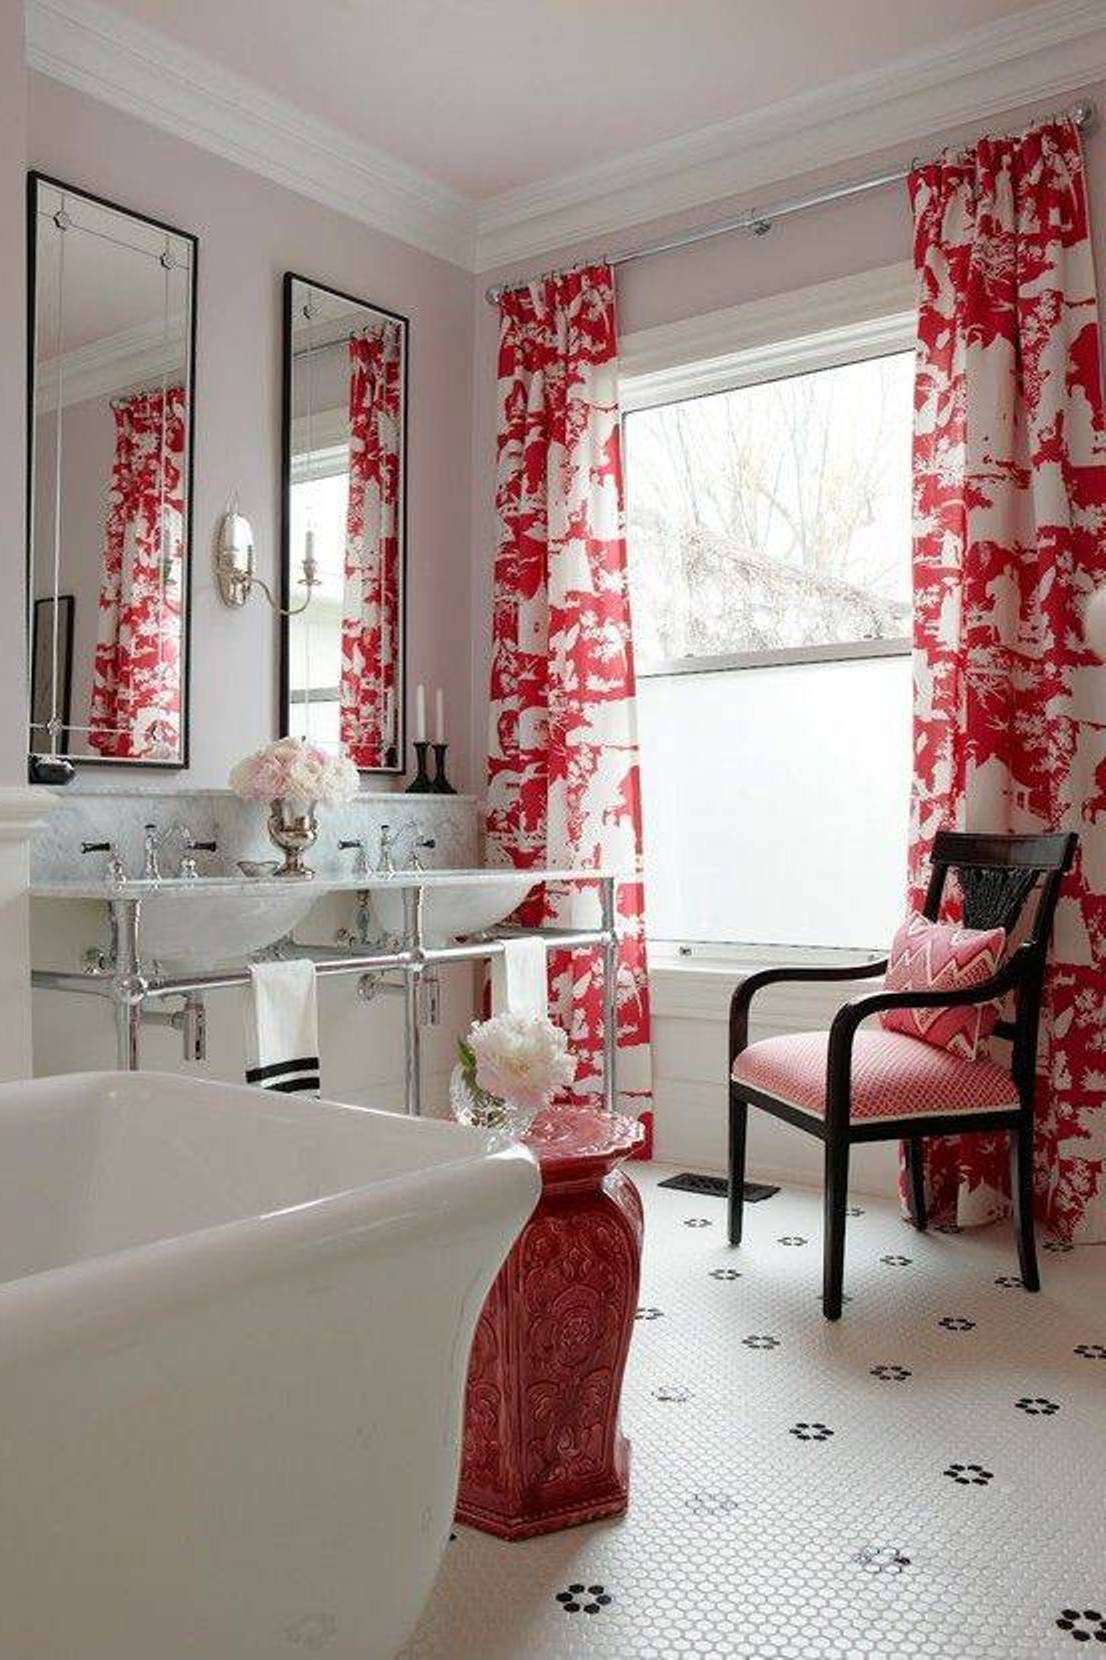 coverings here bathrooms are gallery of bathroom baths throughout palm treatments some window texas the dallas in treatment best install we beach